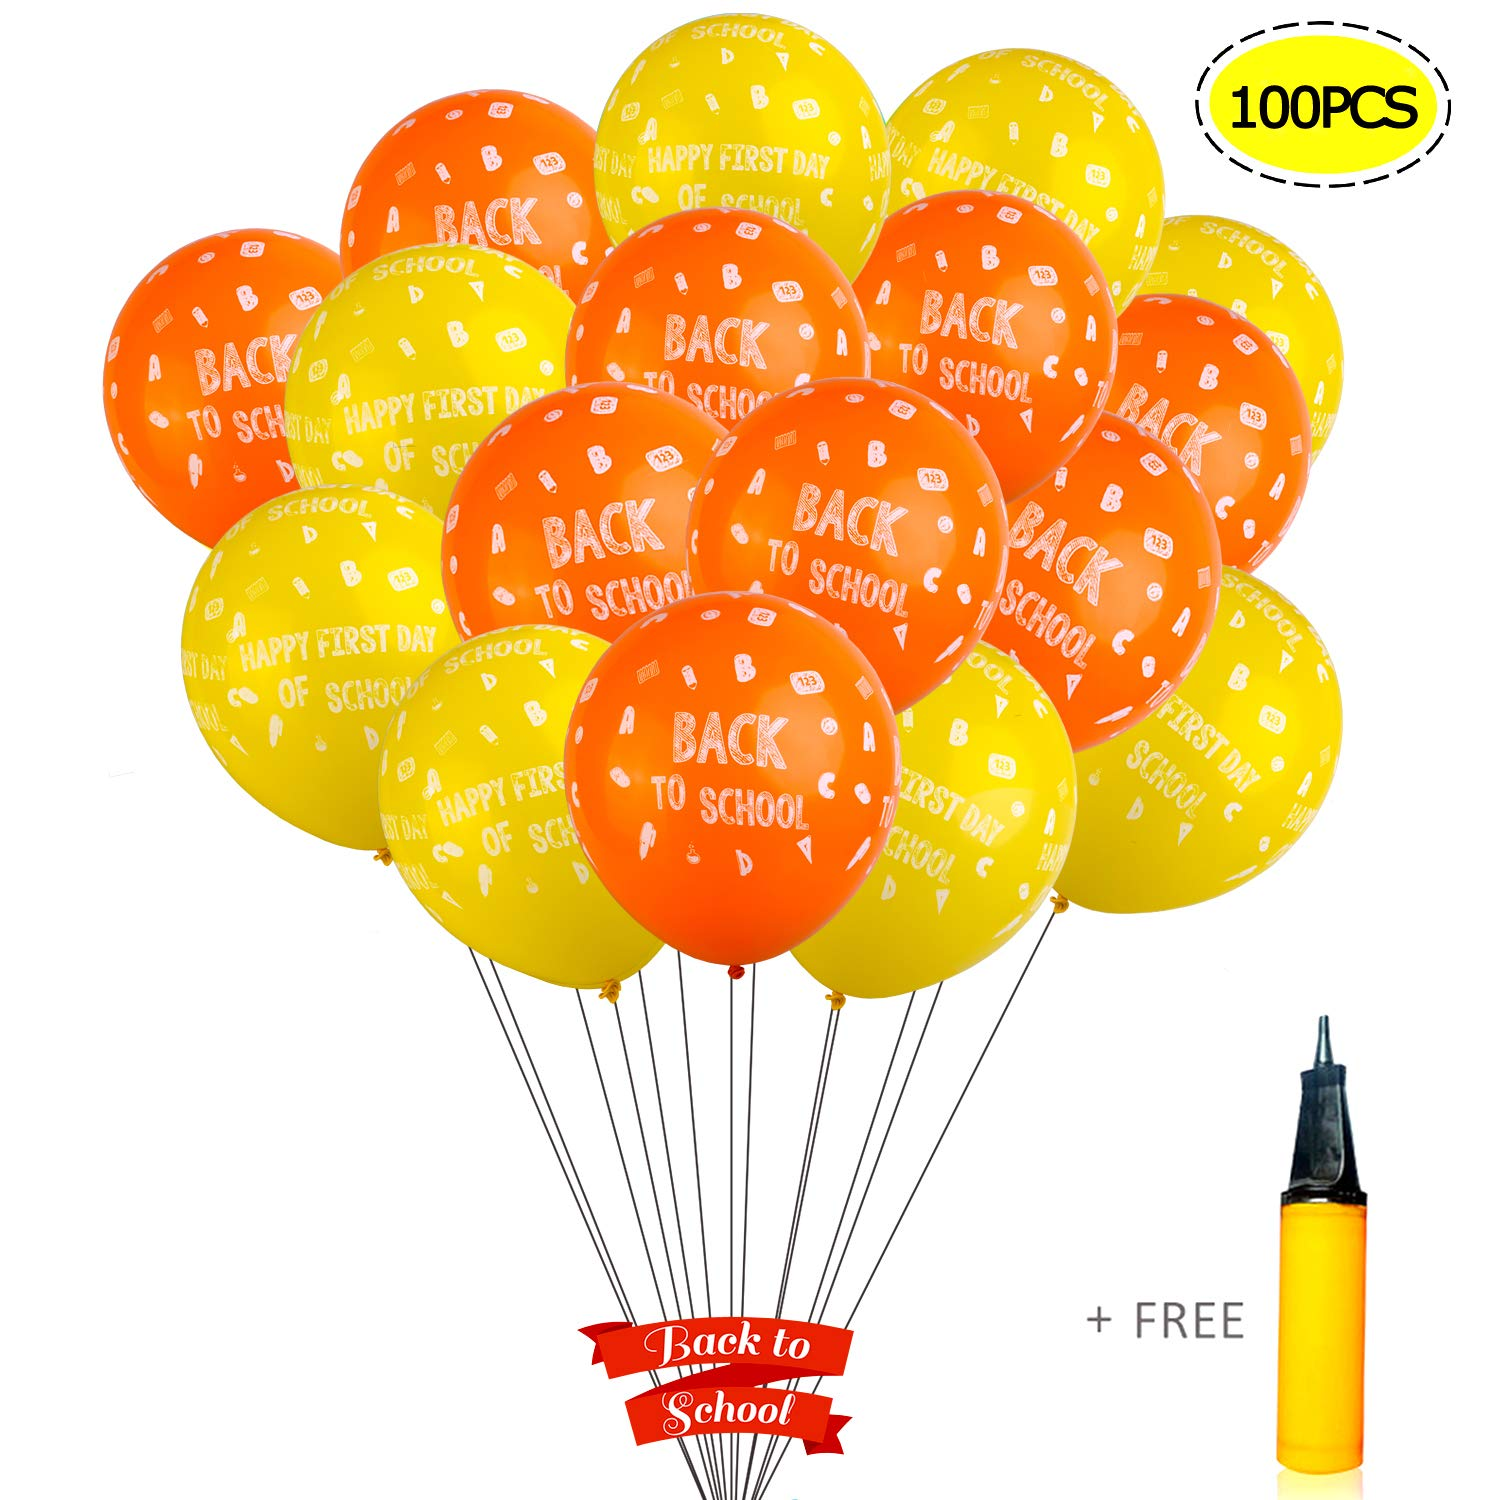 WANTU Back to School Decorations - 100 PCS 12 Inches Latex Back to School Balloons with a Hand Air Pump for Classroom Decor, Back to School Decor